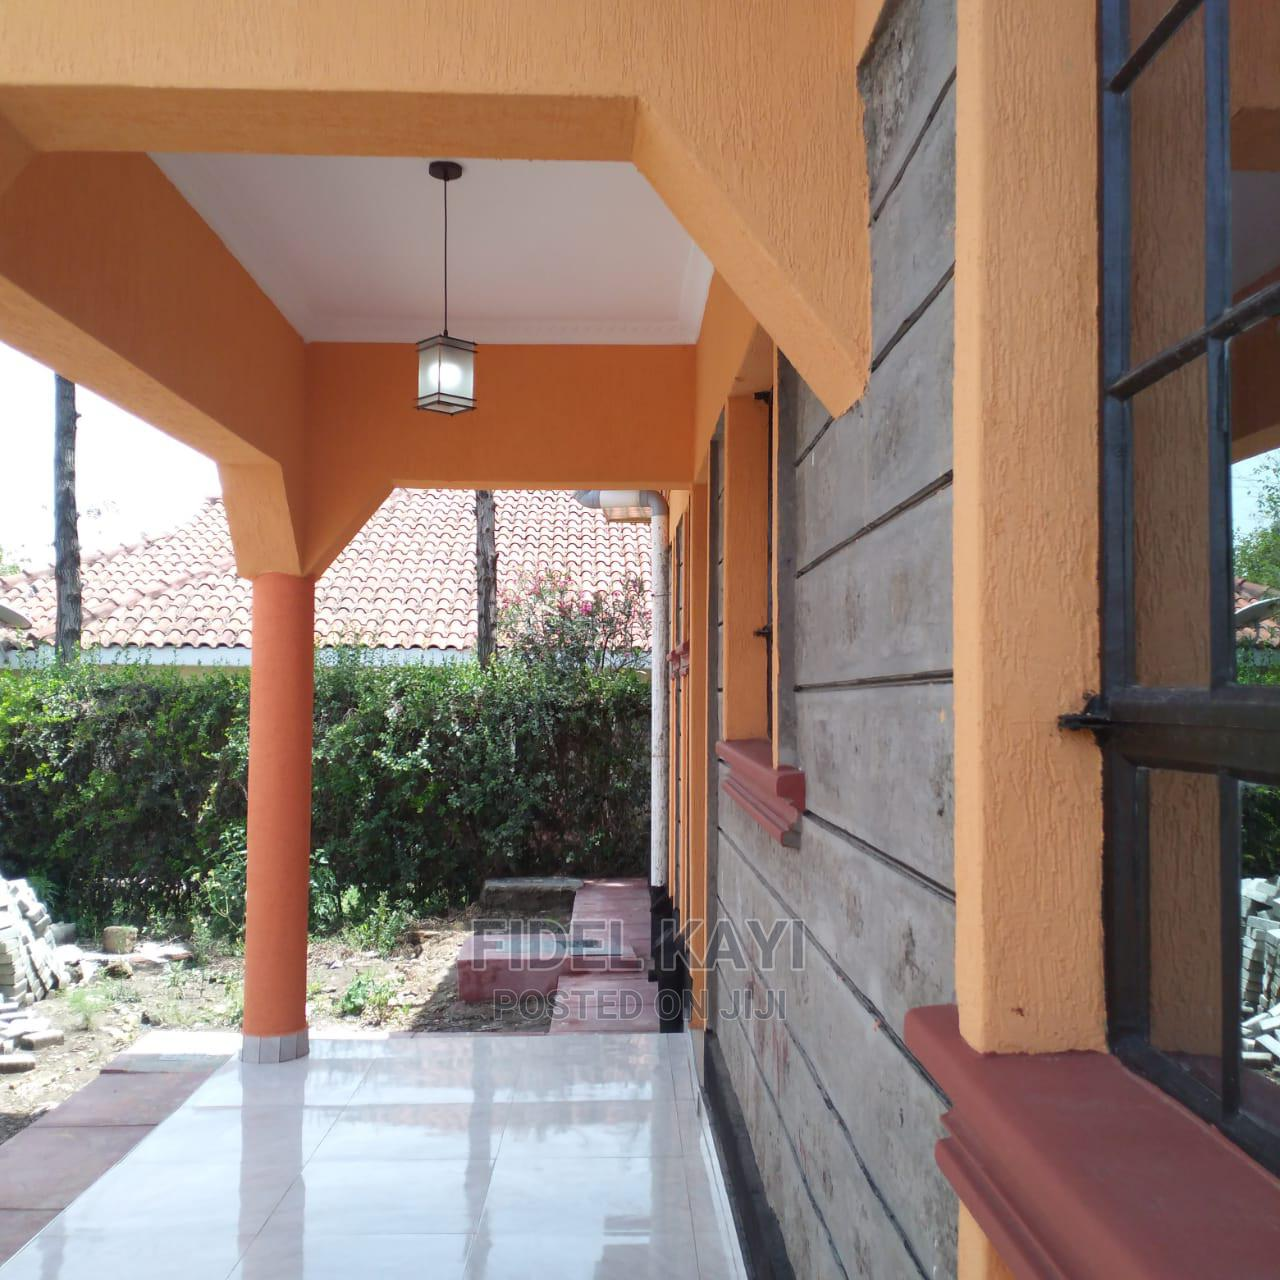 3 Bedroom Bungalow in Kitengela Milimani 900m From Town   Houses & Apartments For Sale for sale in Nairobi Central, Nairobi, Kenya